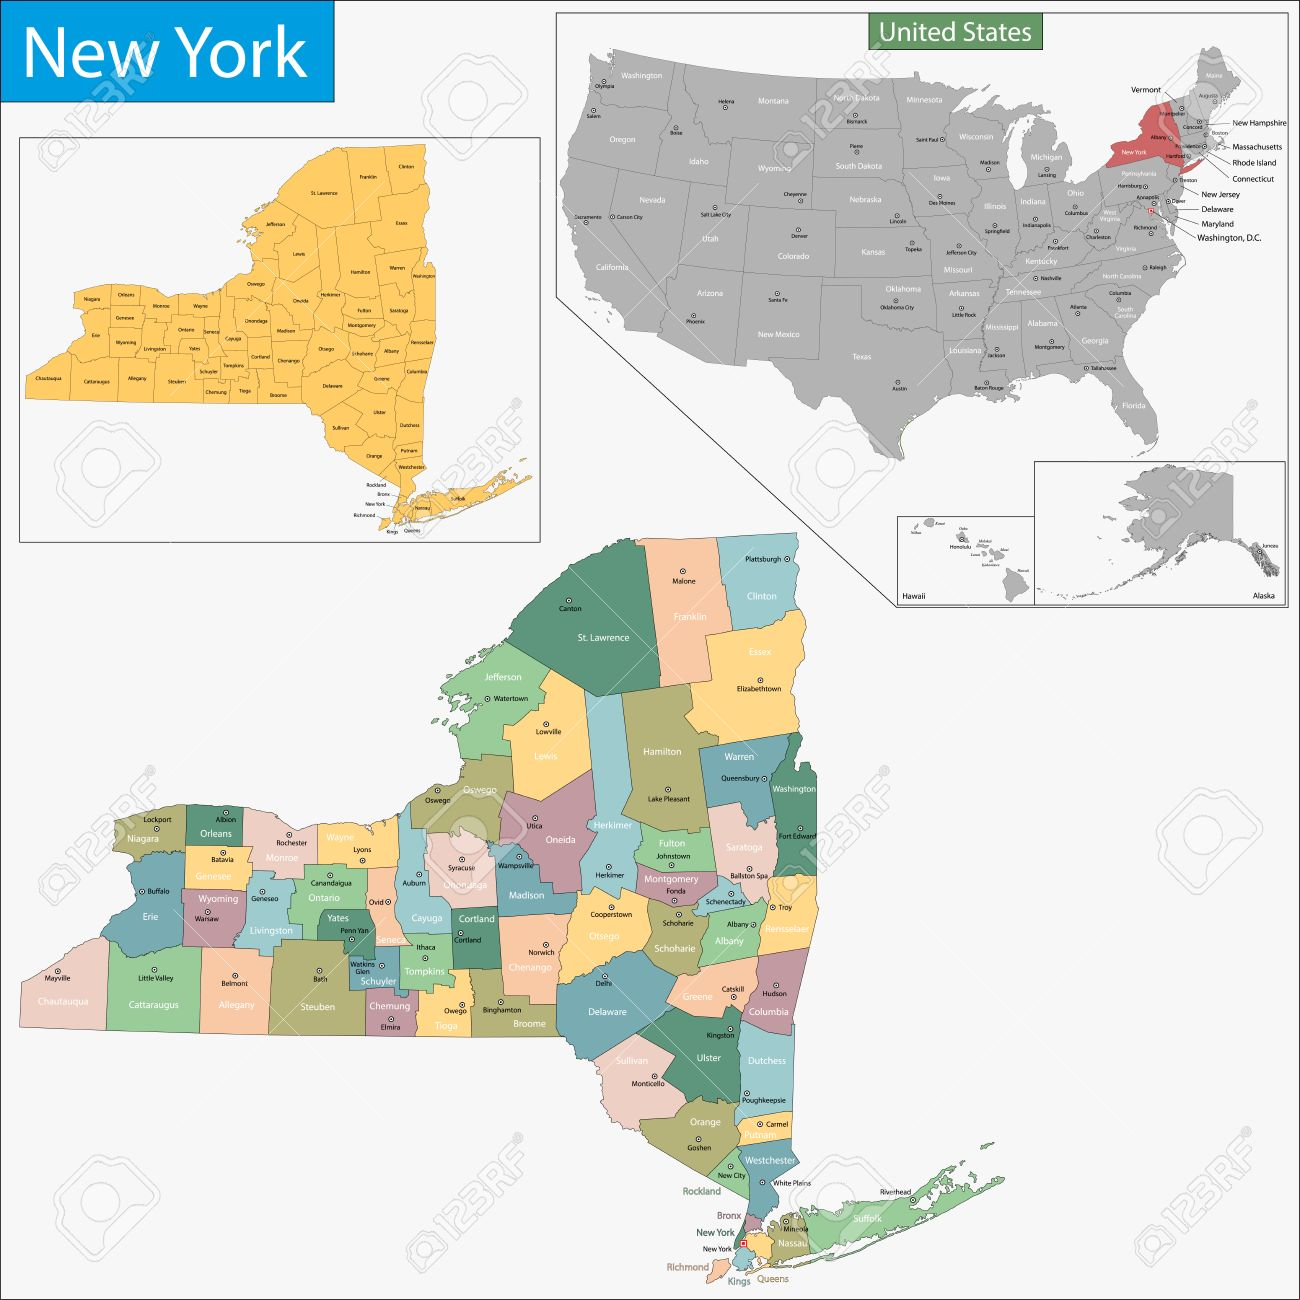 Map Of New York State Designed In Illustration With The Counties - New york state map with counties